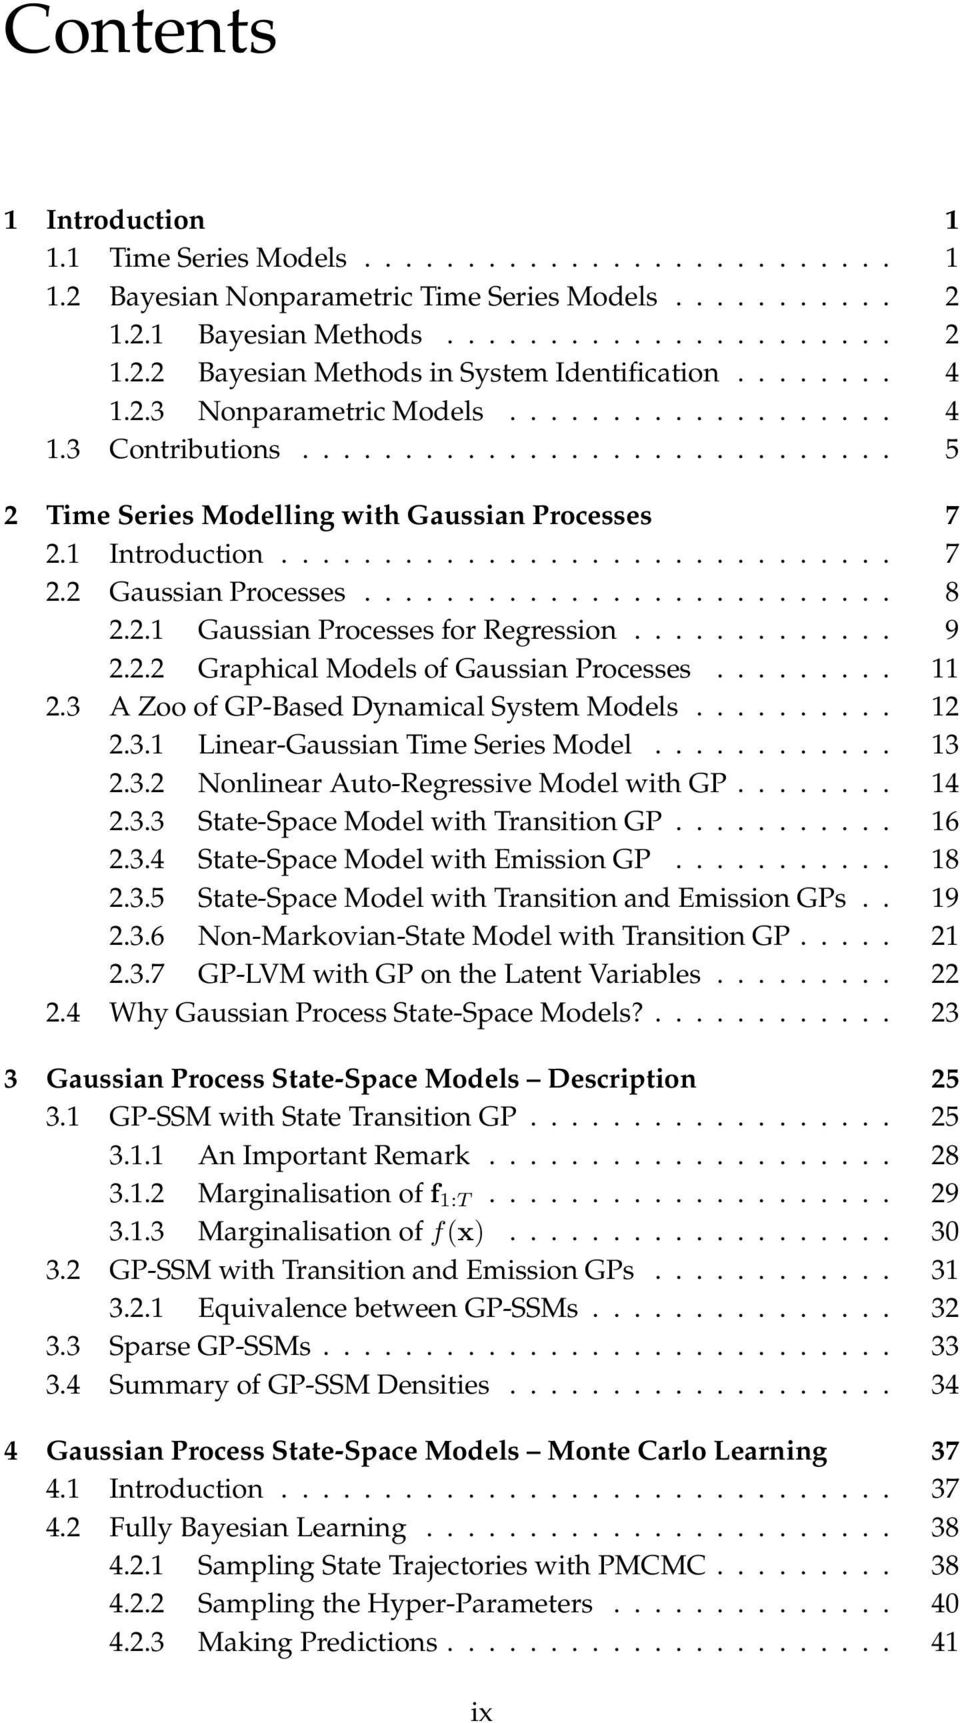 ......................... 8 2.2.1 Gaussian Processes for Regression............. 9 2.2.2 Graphical Models of Gaussian Processes......... 11 2.3 A Zoo of GP-Based Dynamical System Models.......... 12 2.